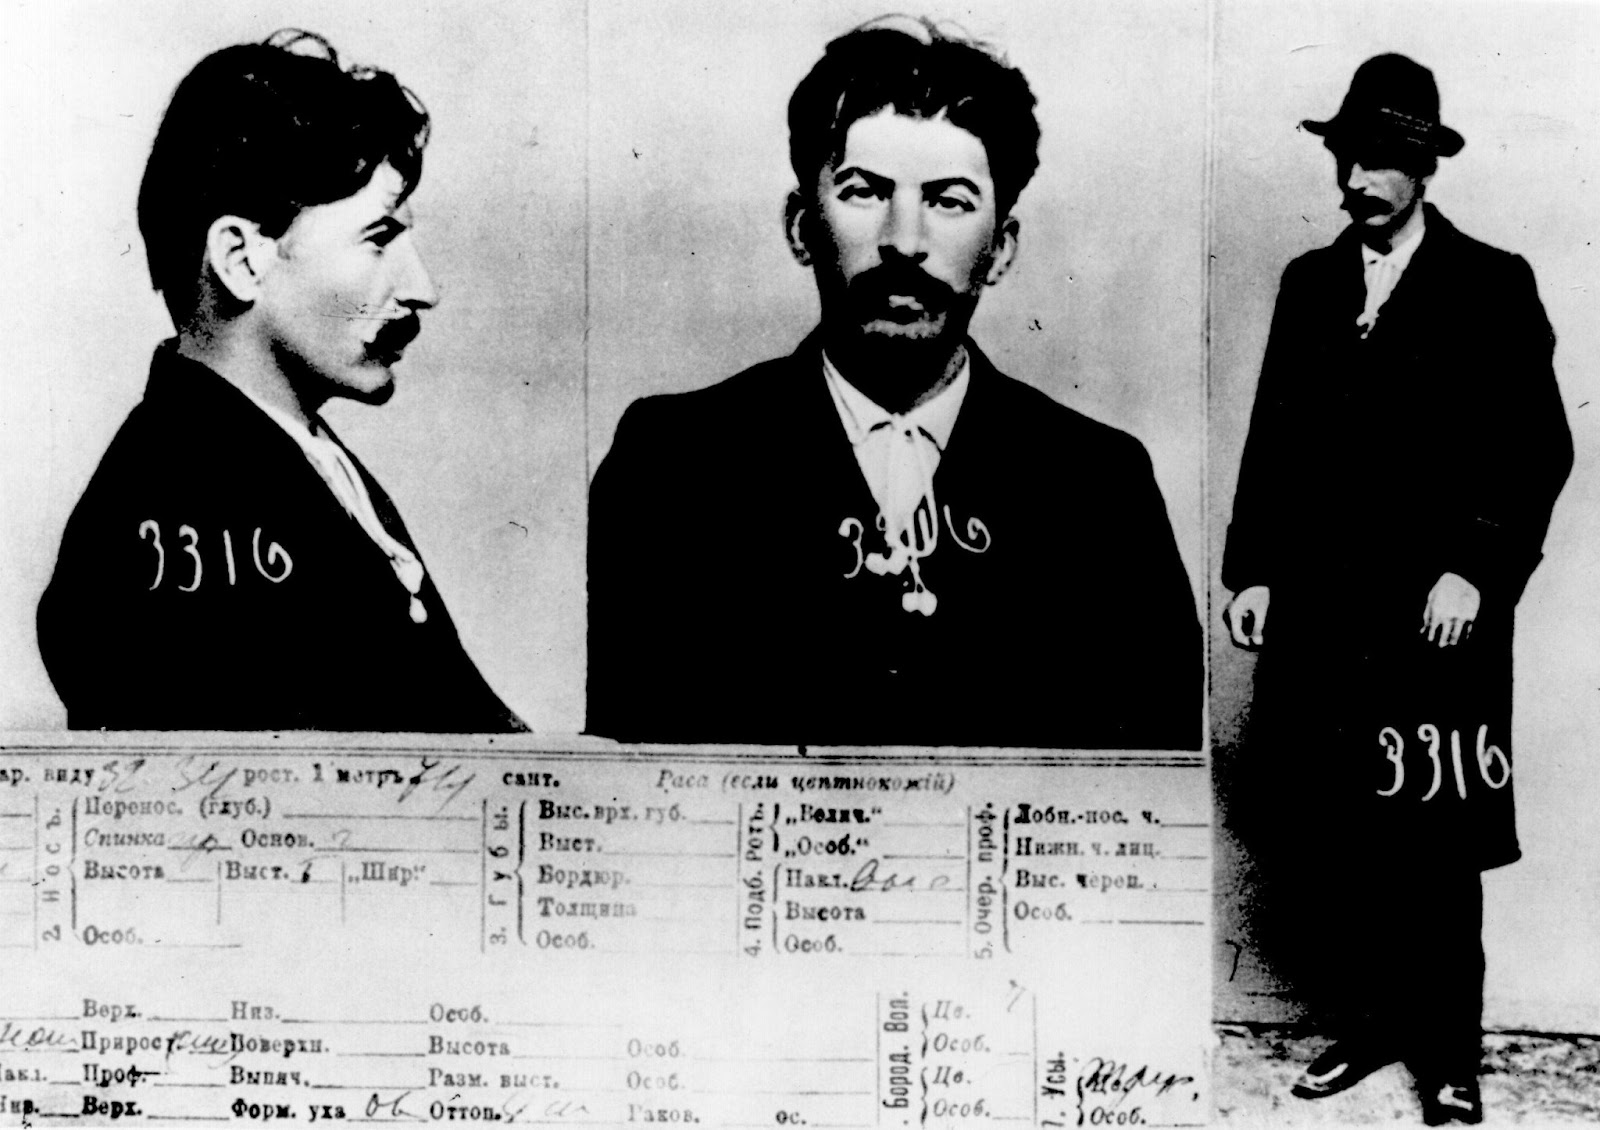 Mugshot of Joseph Stalin held by Okhrana: the Tsarist Secret Police, 1911